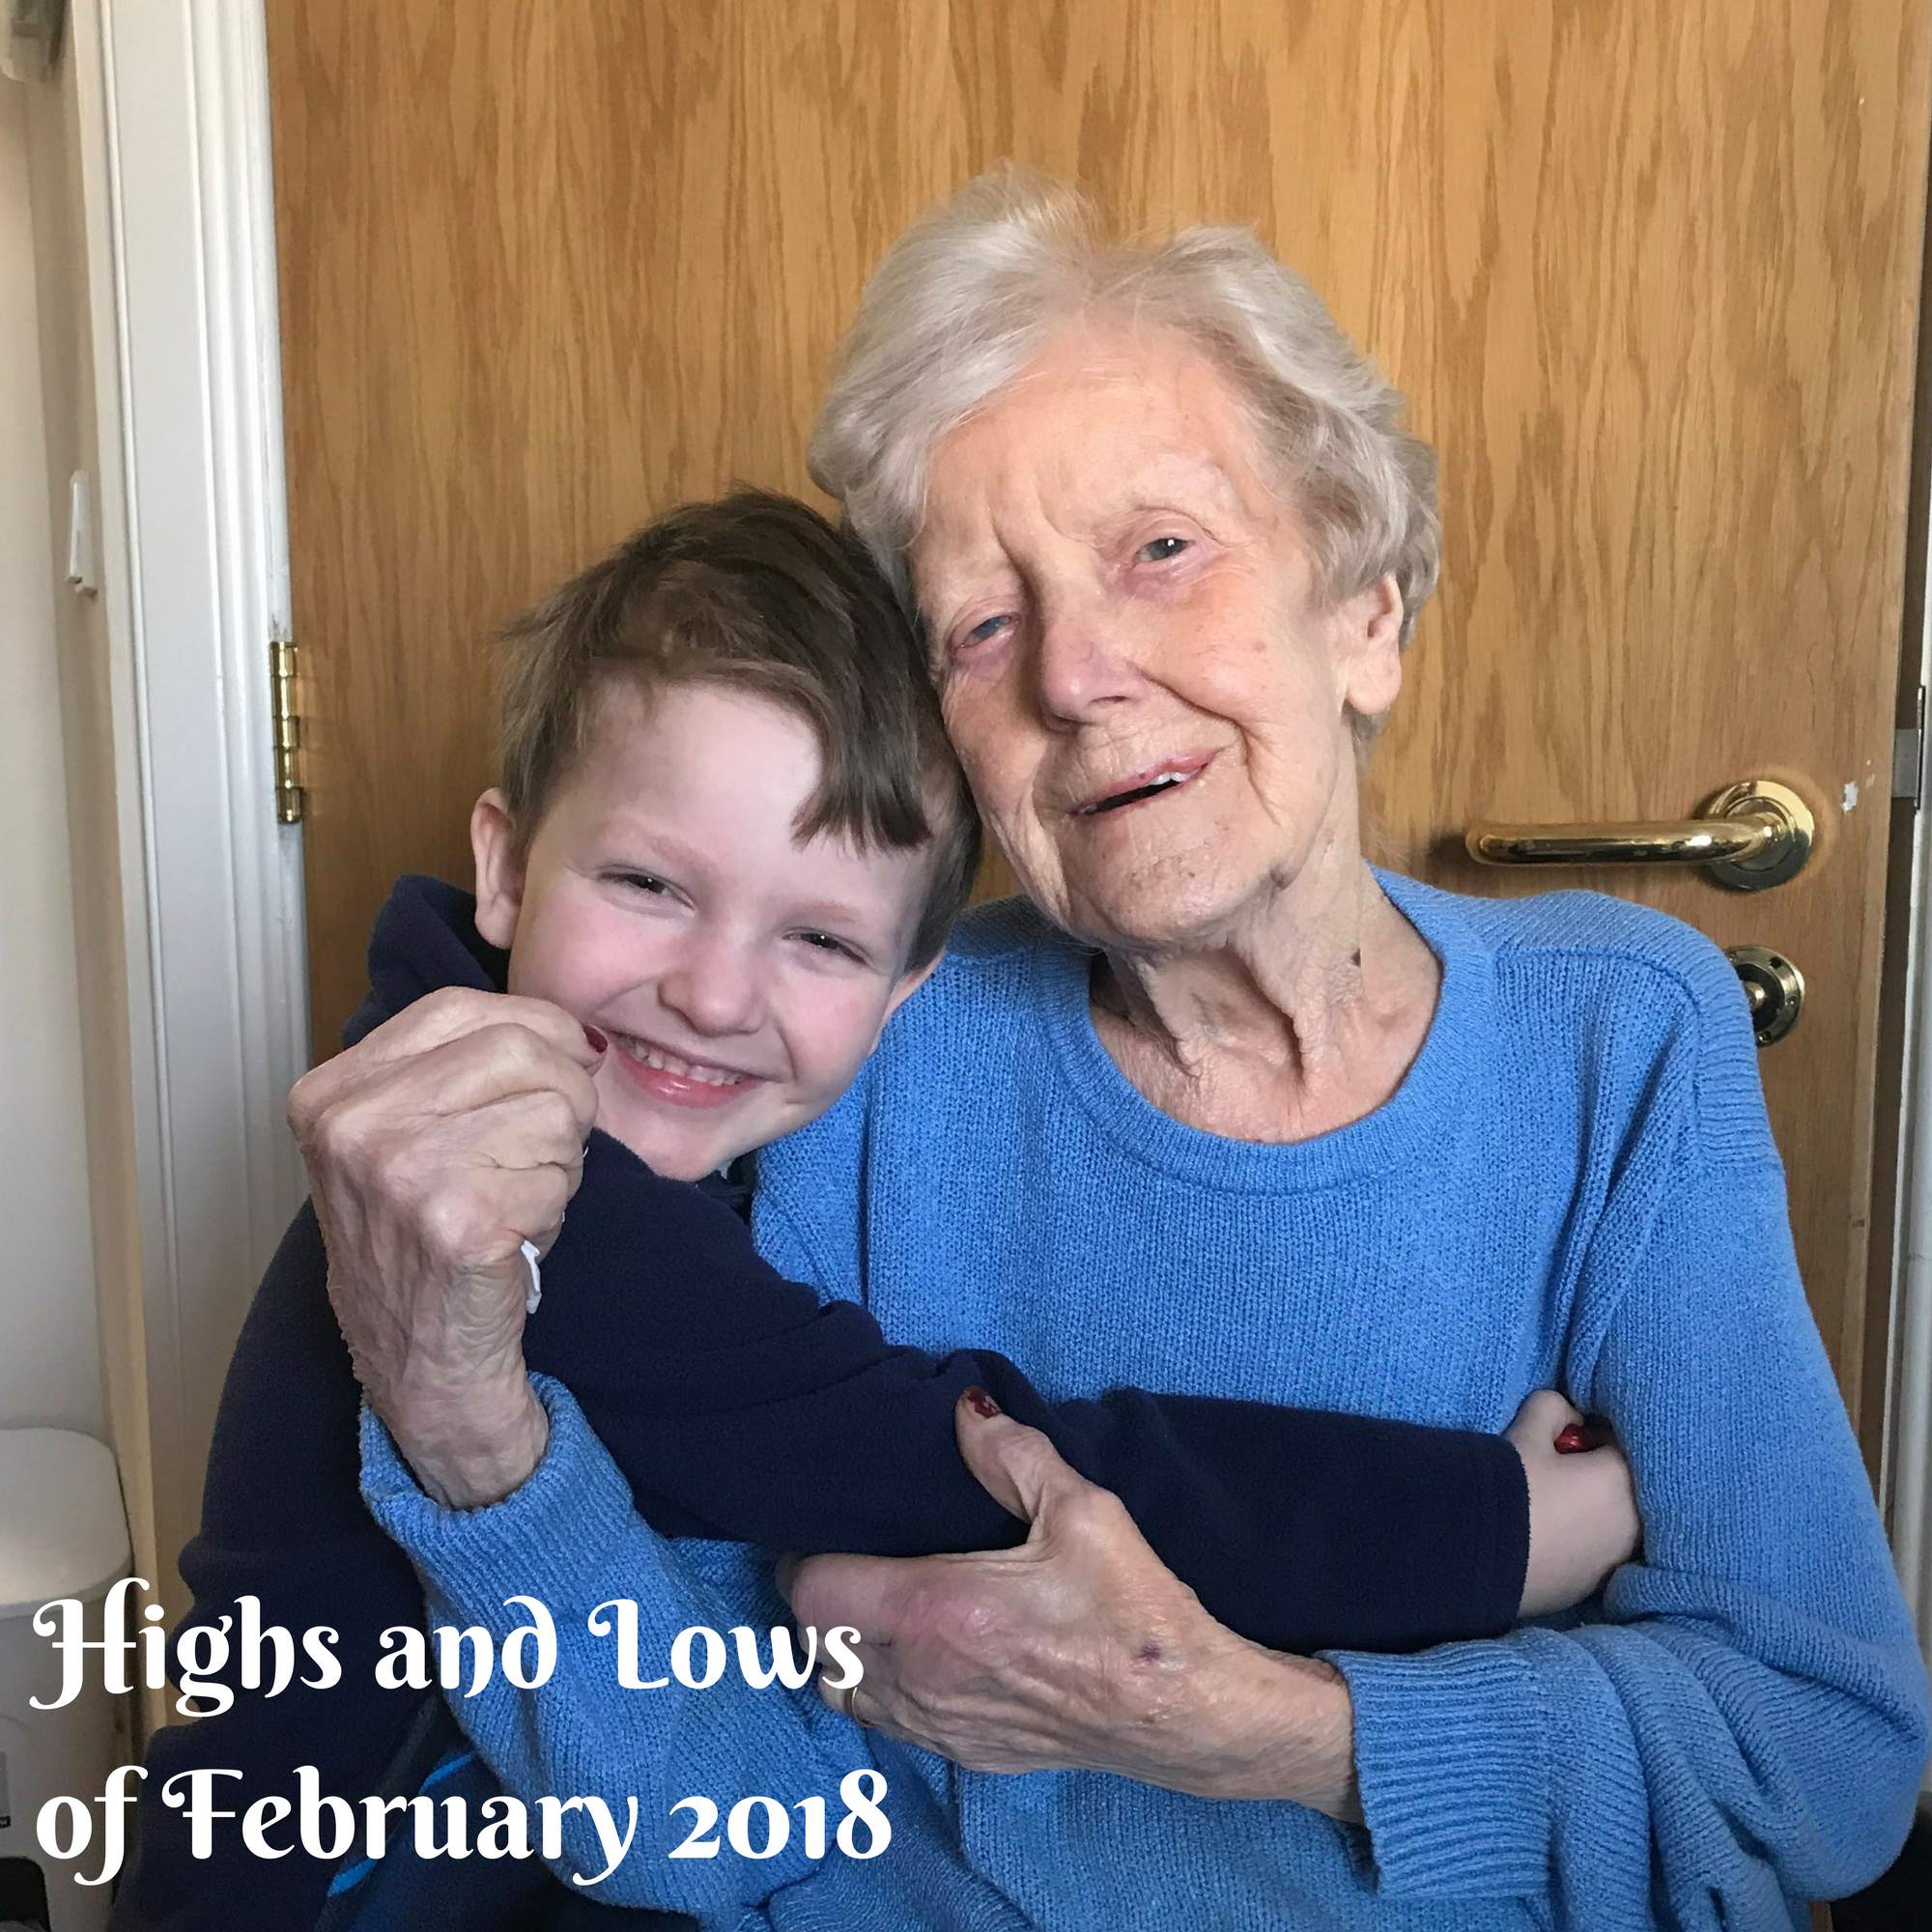 Highs and Lows of February 2018